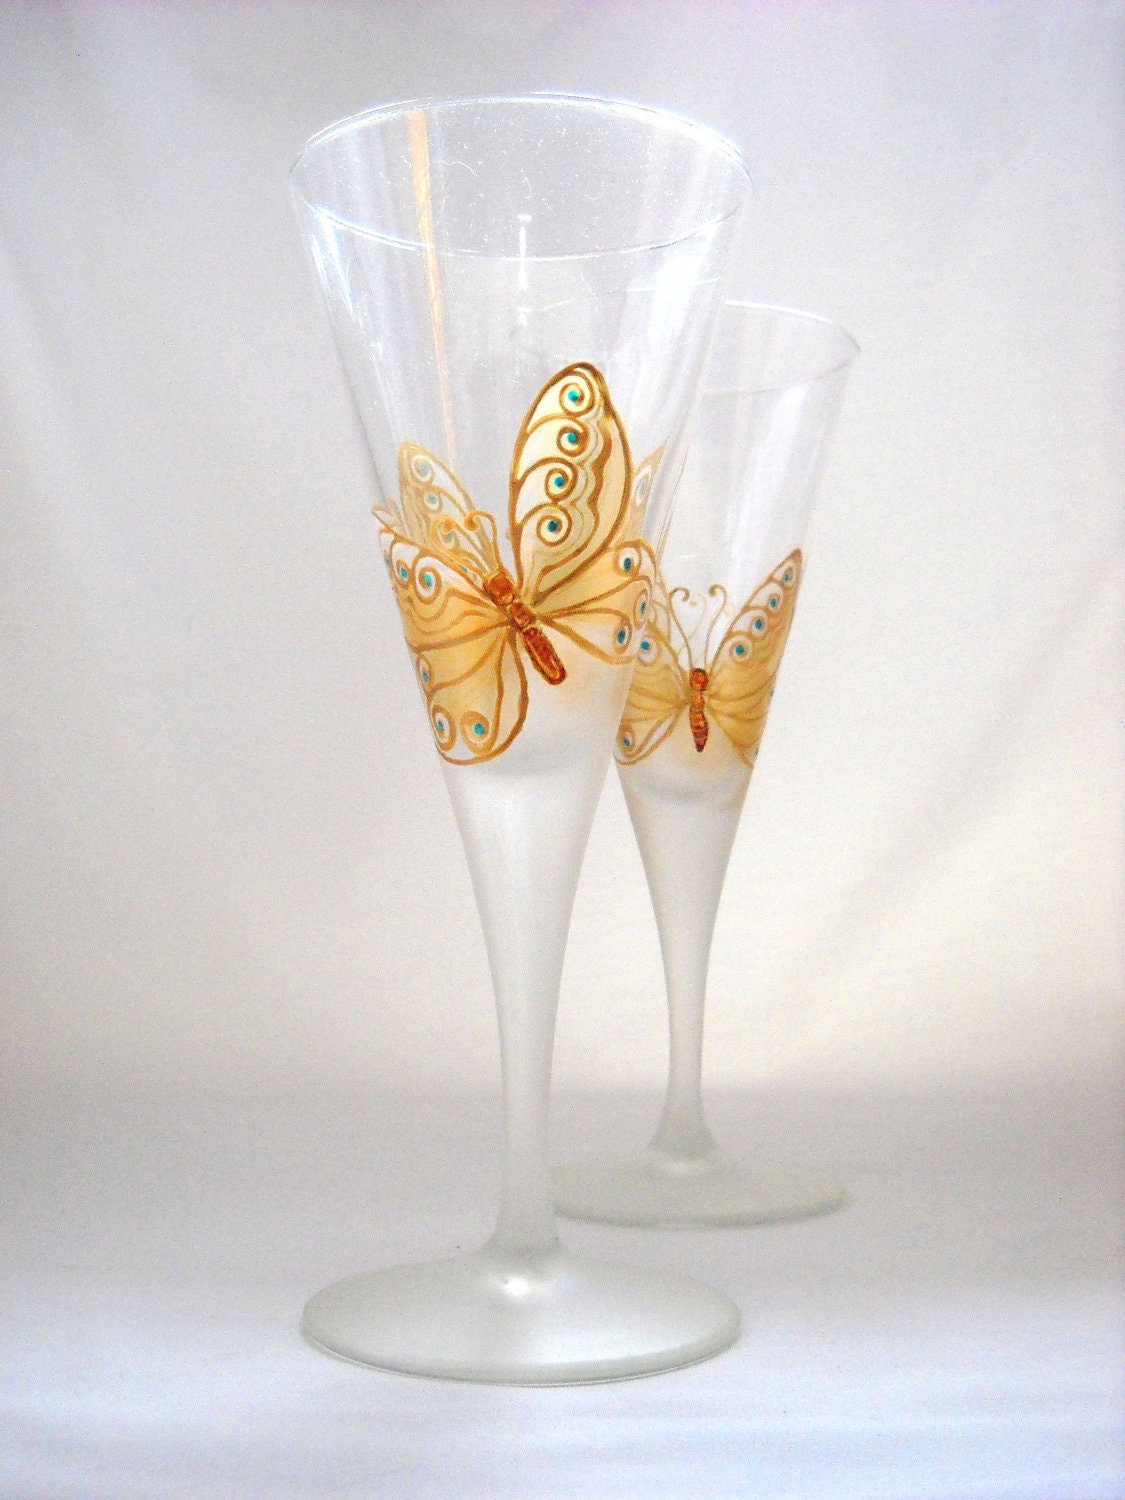 Items Similar To Glassware Hand Painted Wedding Glasses Golden Butterfly On Etsy